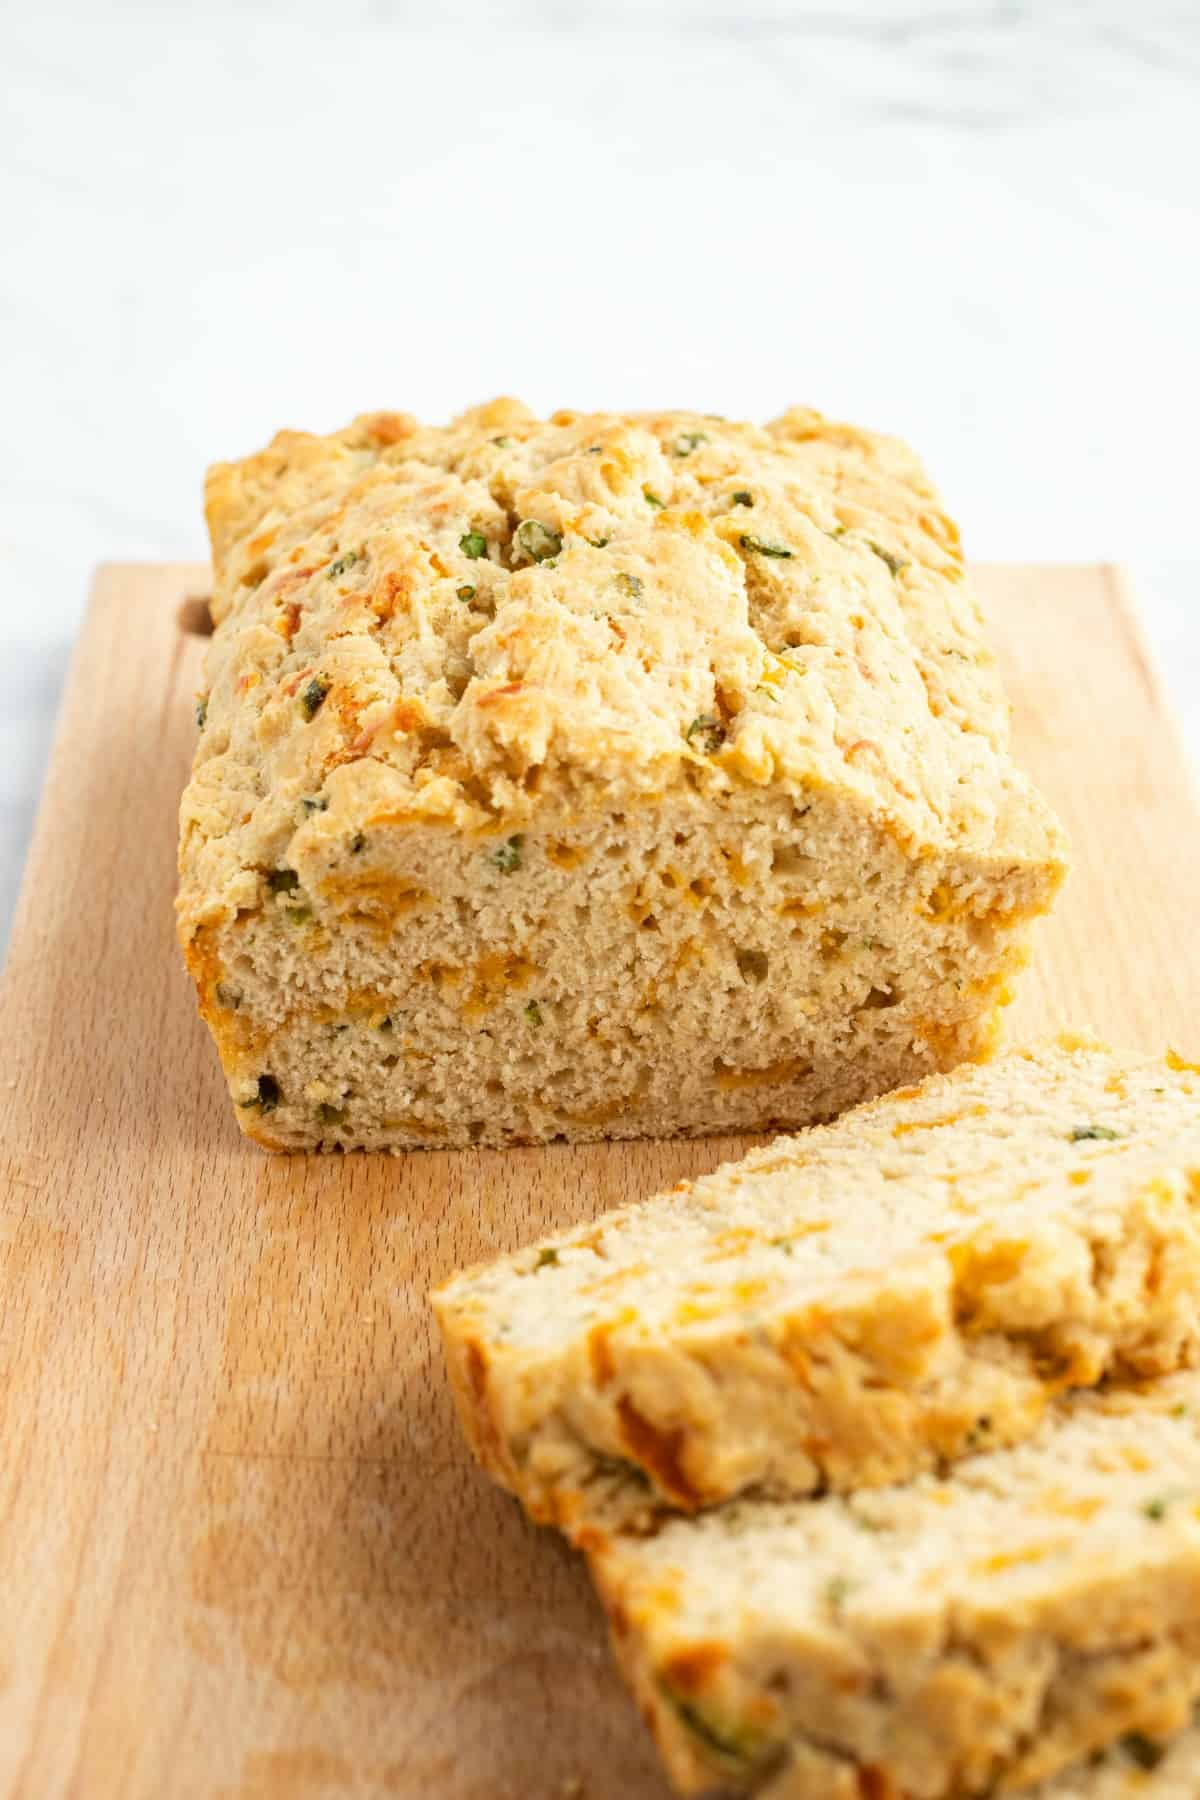 Beer bread with cheese and green onions on a wooden cutting board with several slices cut.